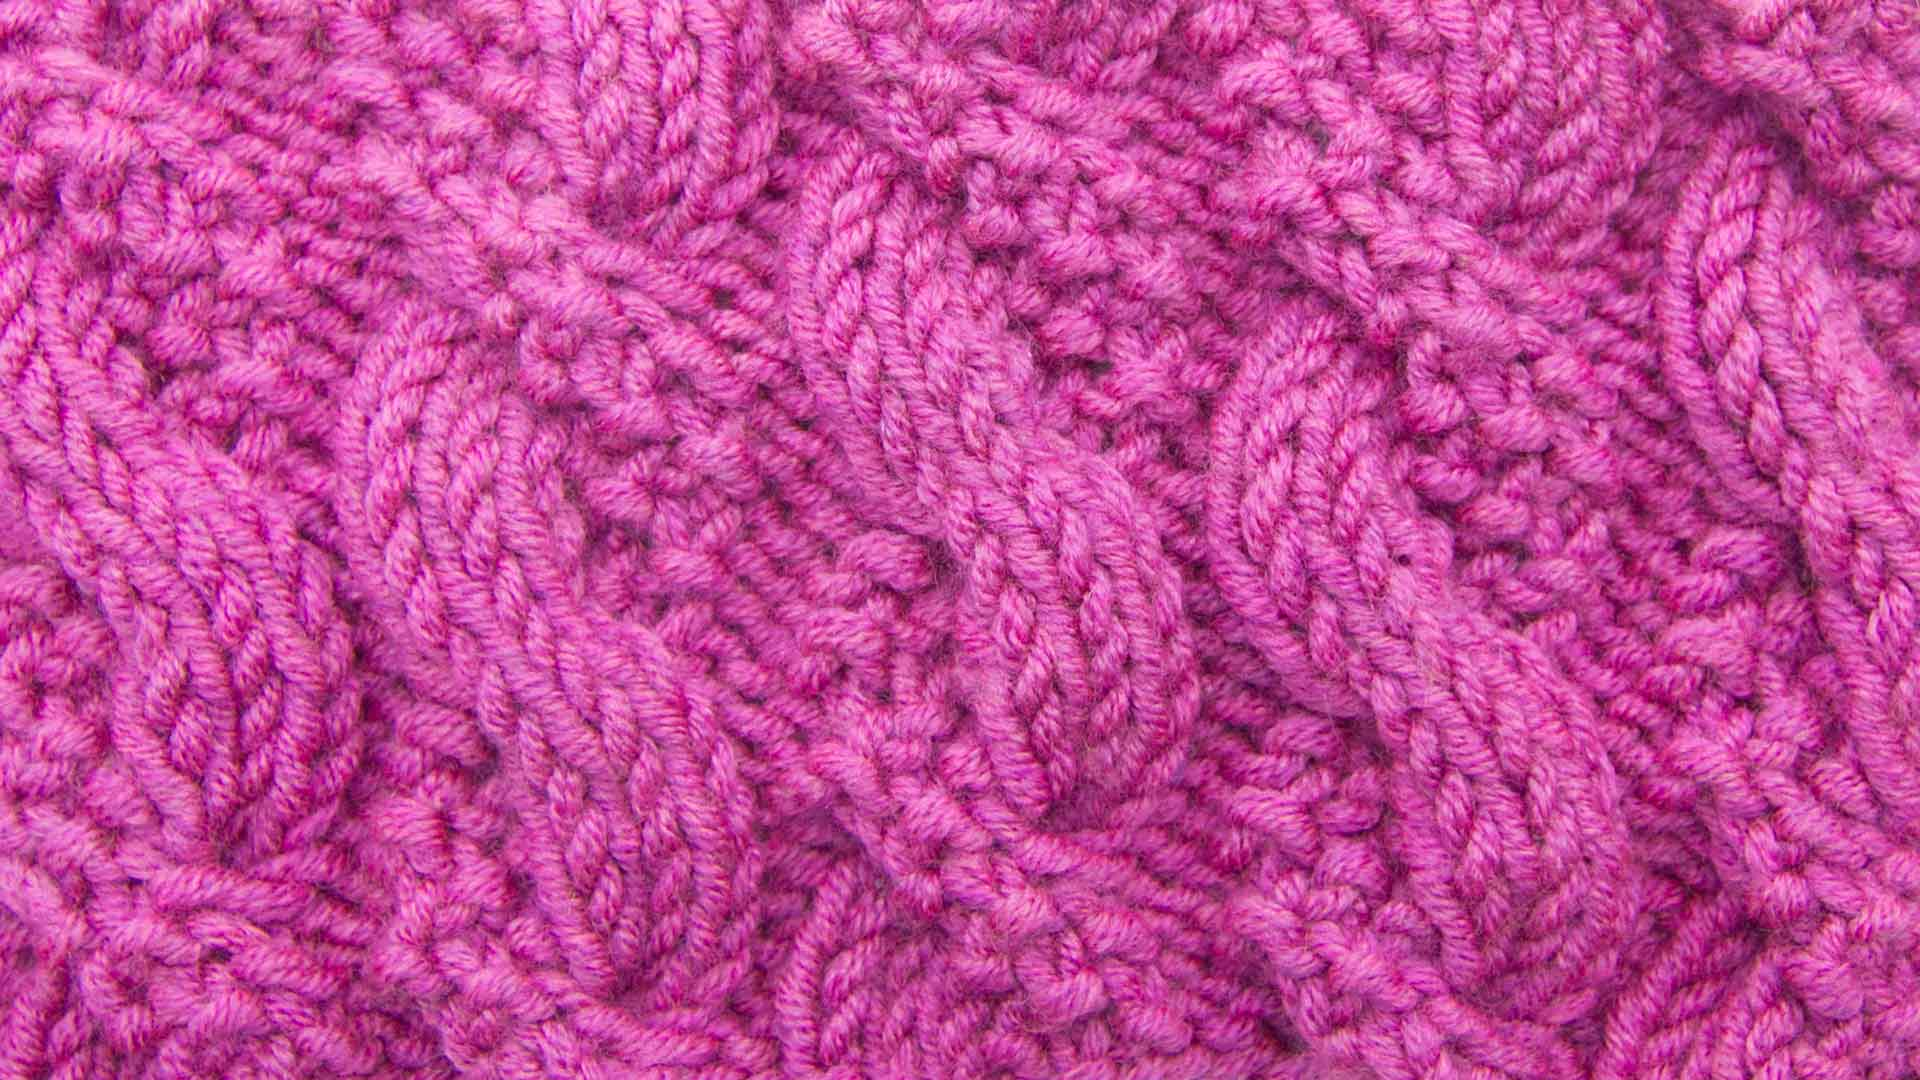 knitting stitches the textured cable stitch :: knitting stitch #526 VTFNFPW